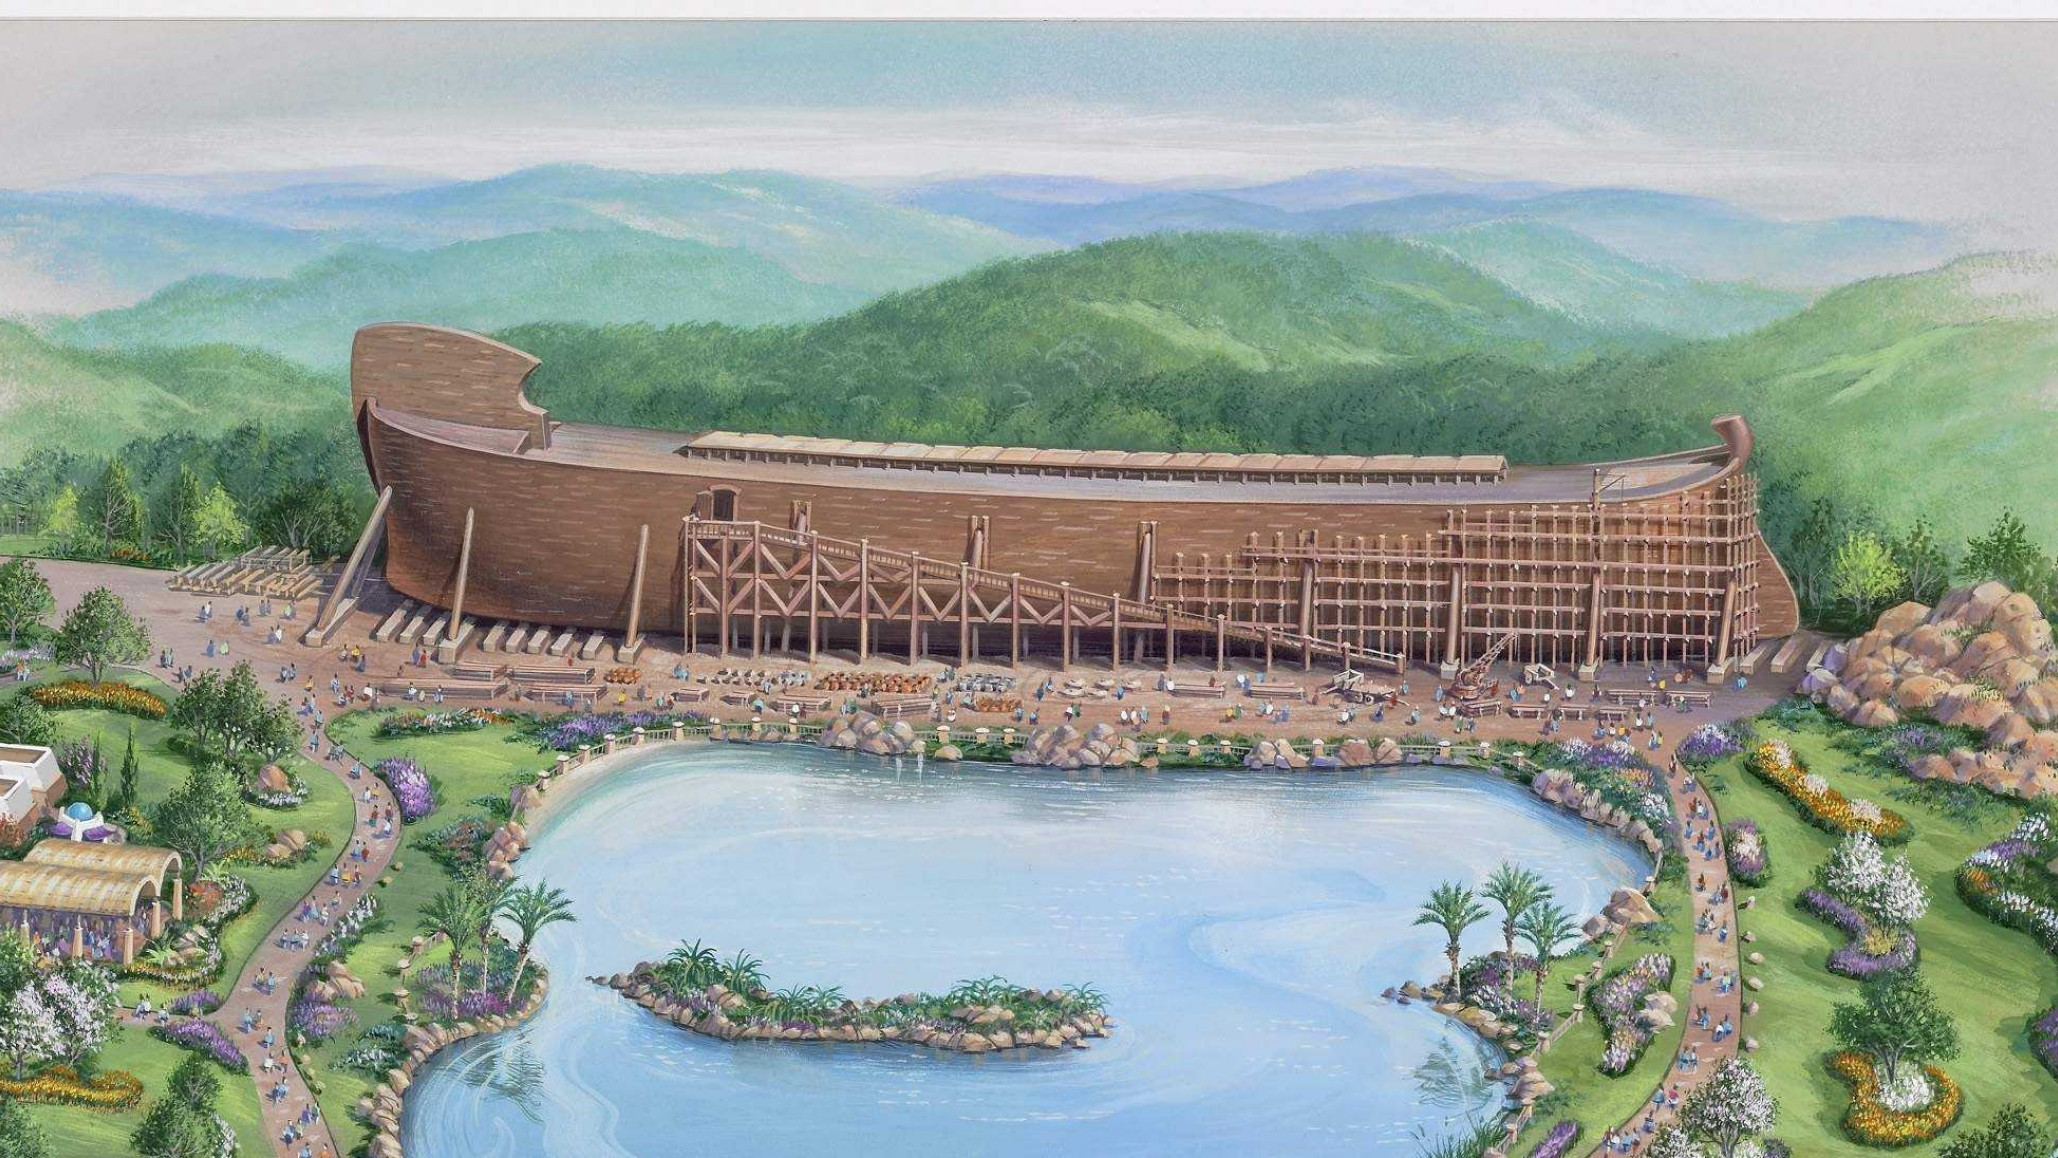 Can Creationist Junk Bonds Keep the Noah's Ark Theme Park Afloat?